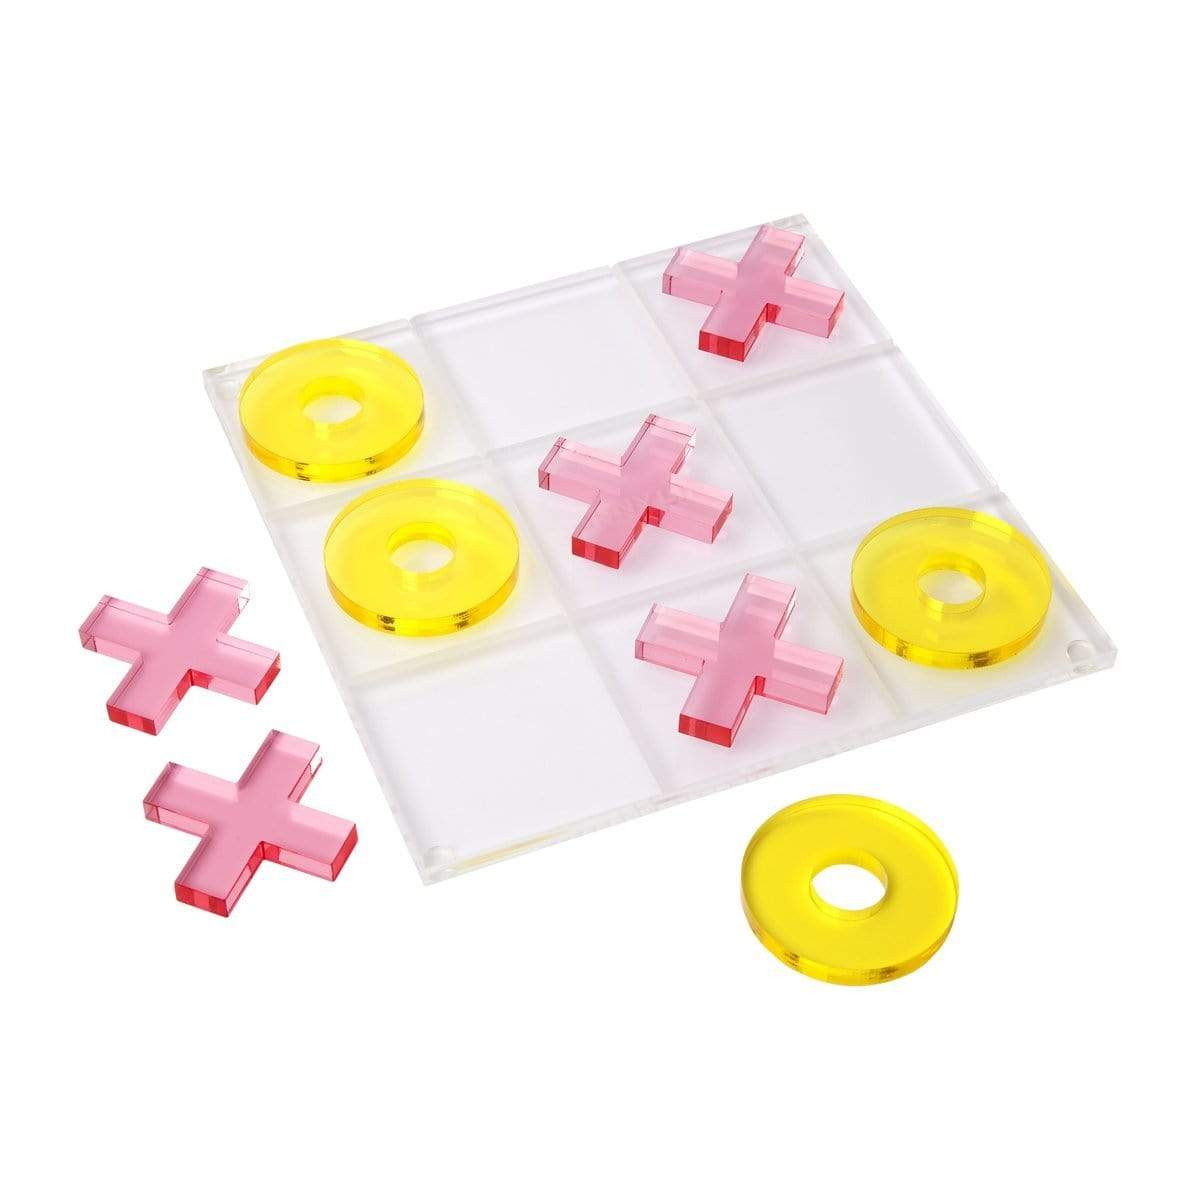 SUNNYLIFE Games Lucite Super Fly Tic Tac Toe